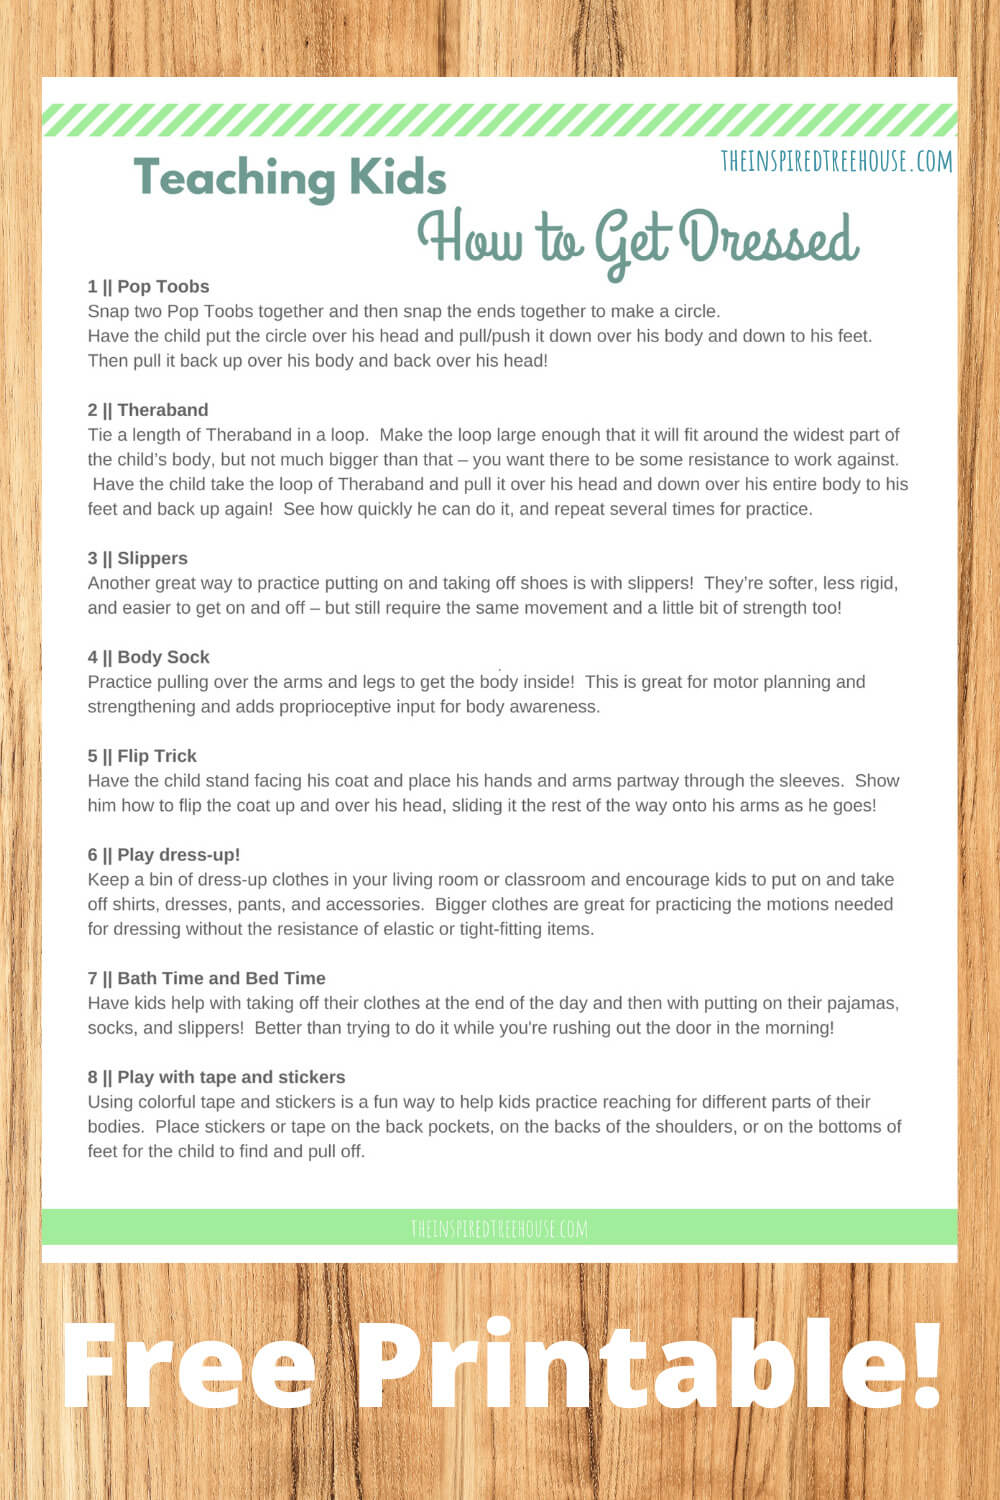 The Inspired Treehouse - Teaching kids how to dress themselves can be a challenge! Try these fun ideas to help kids gain independence and confidence.